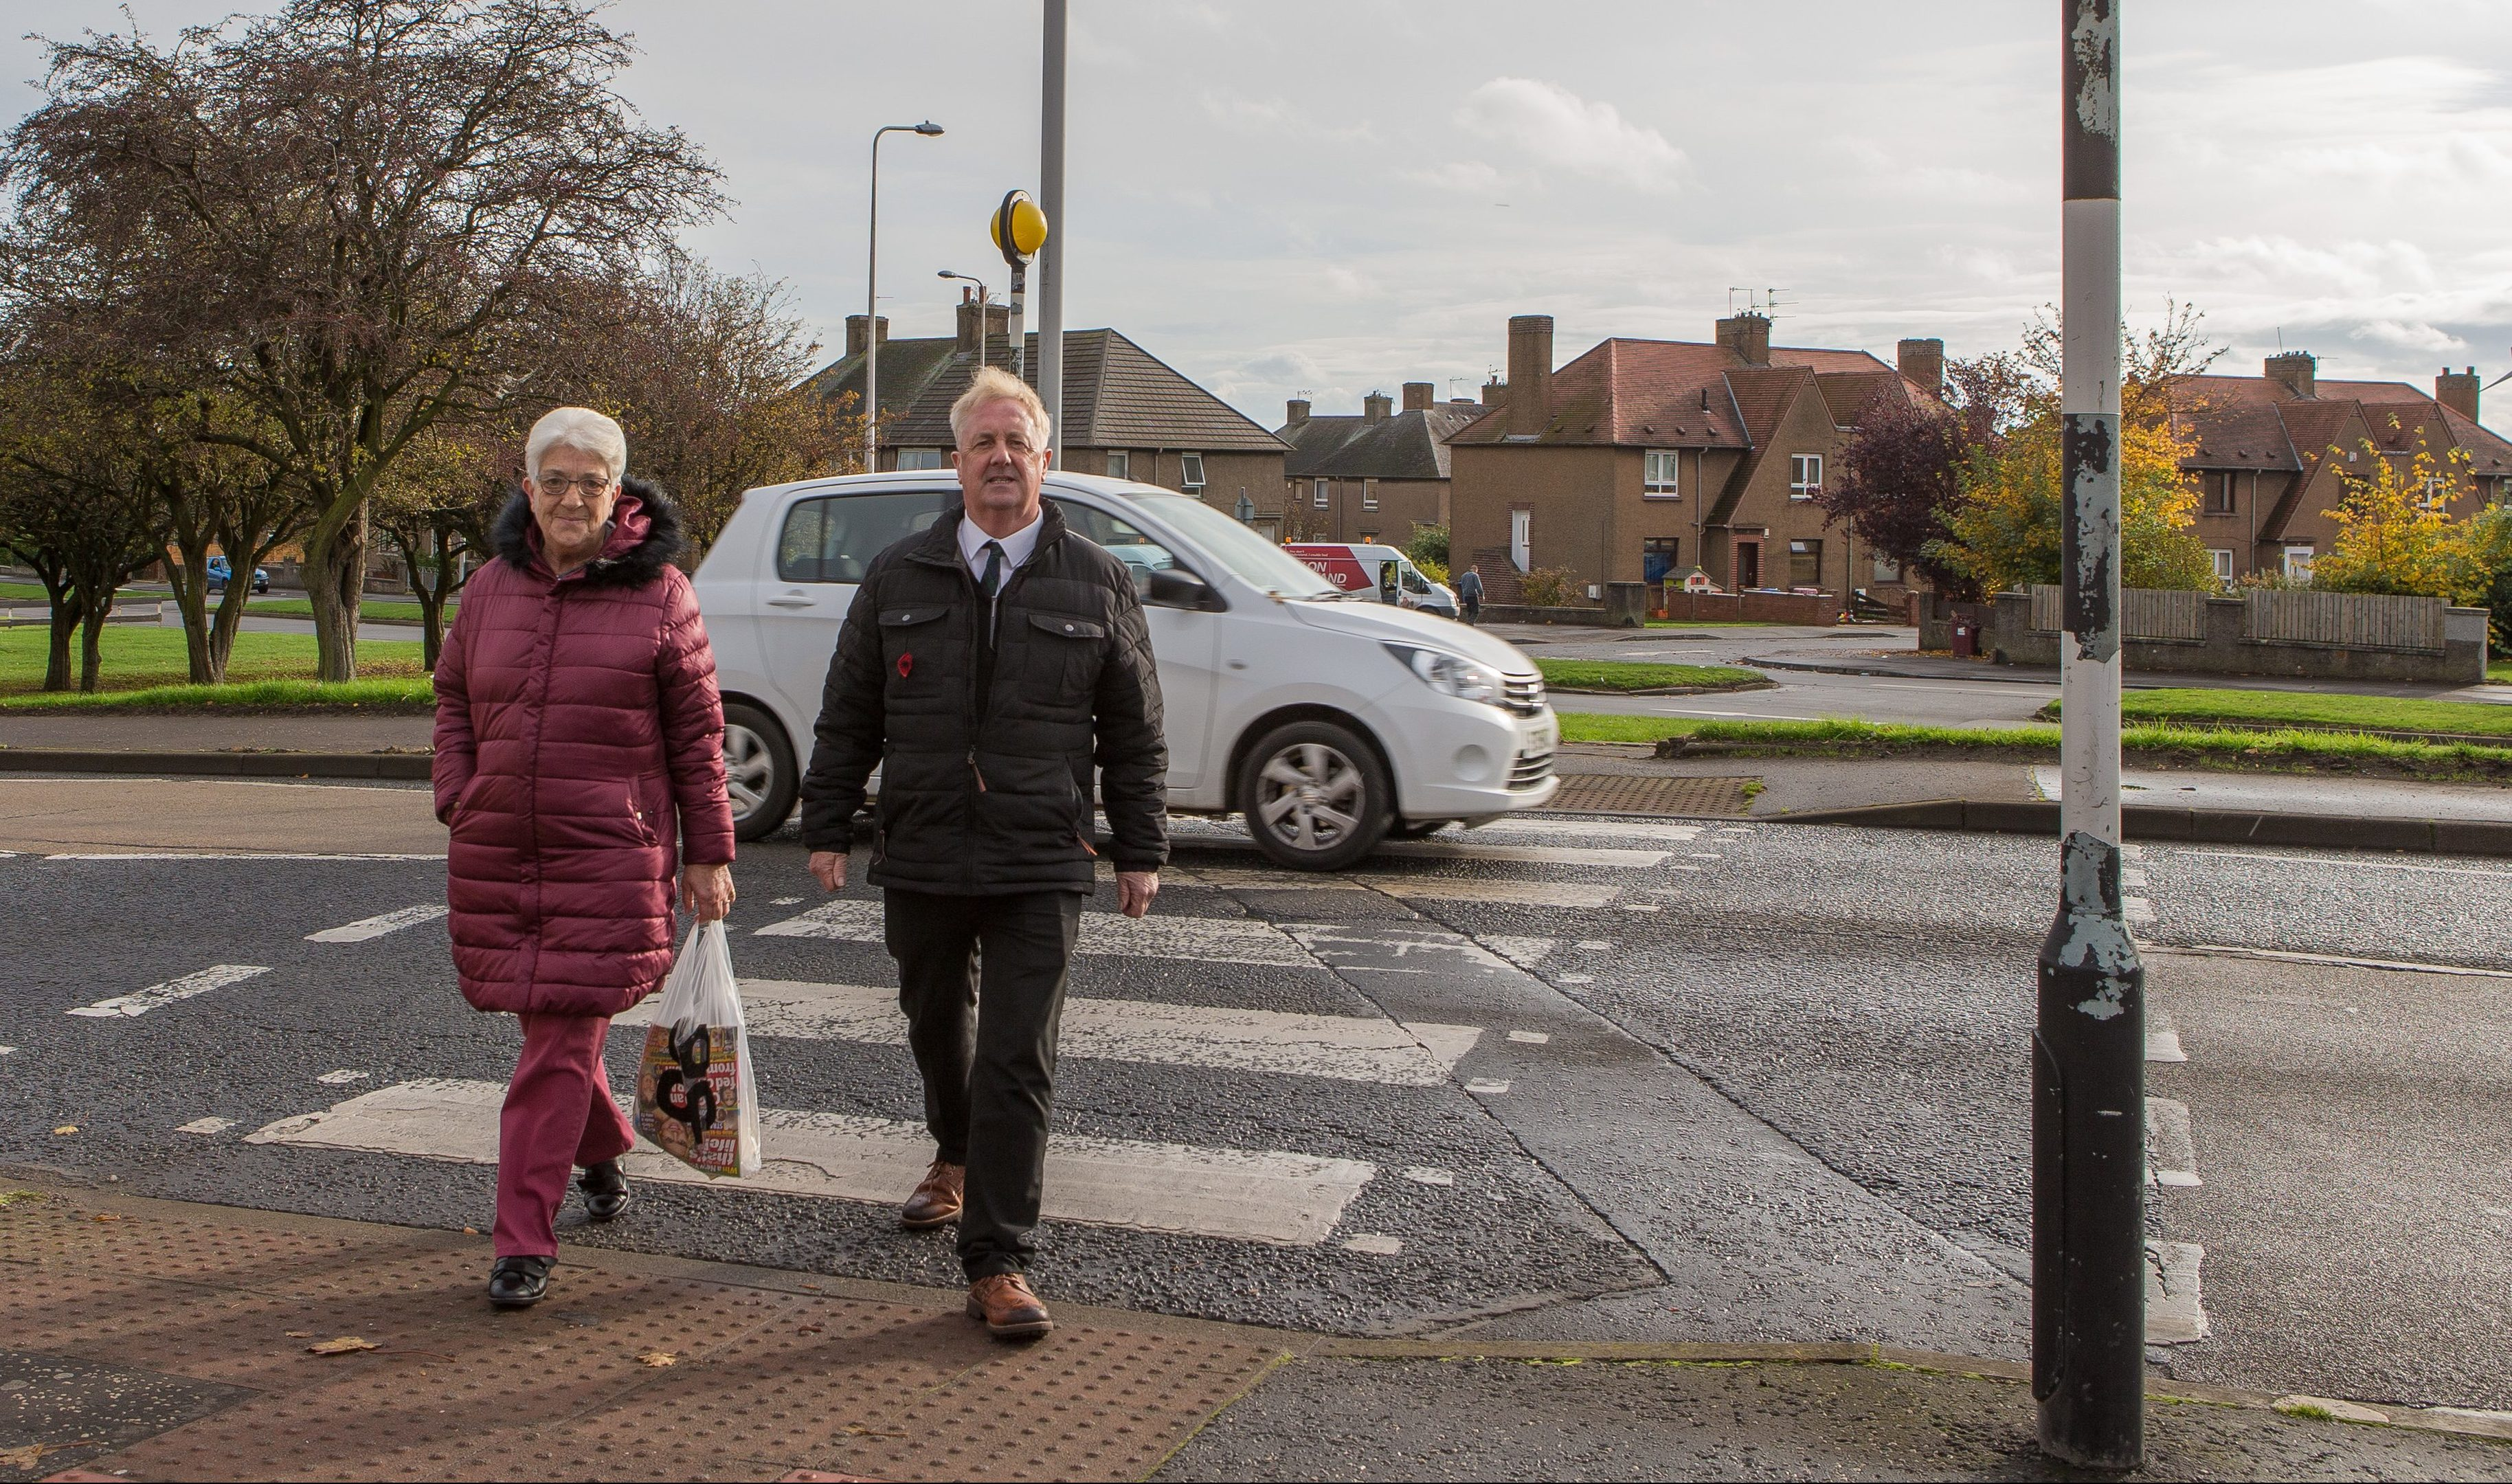 Councillor John O'Brien and local resident Nancy Wiseman are looking to possibly have the zebra crossings removed and replaced with Pelican Crossings where users can press a button to stop the traffic.